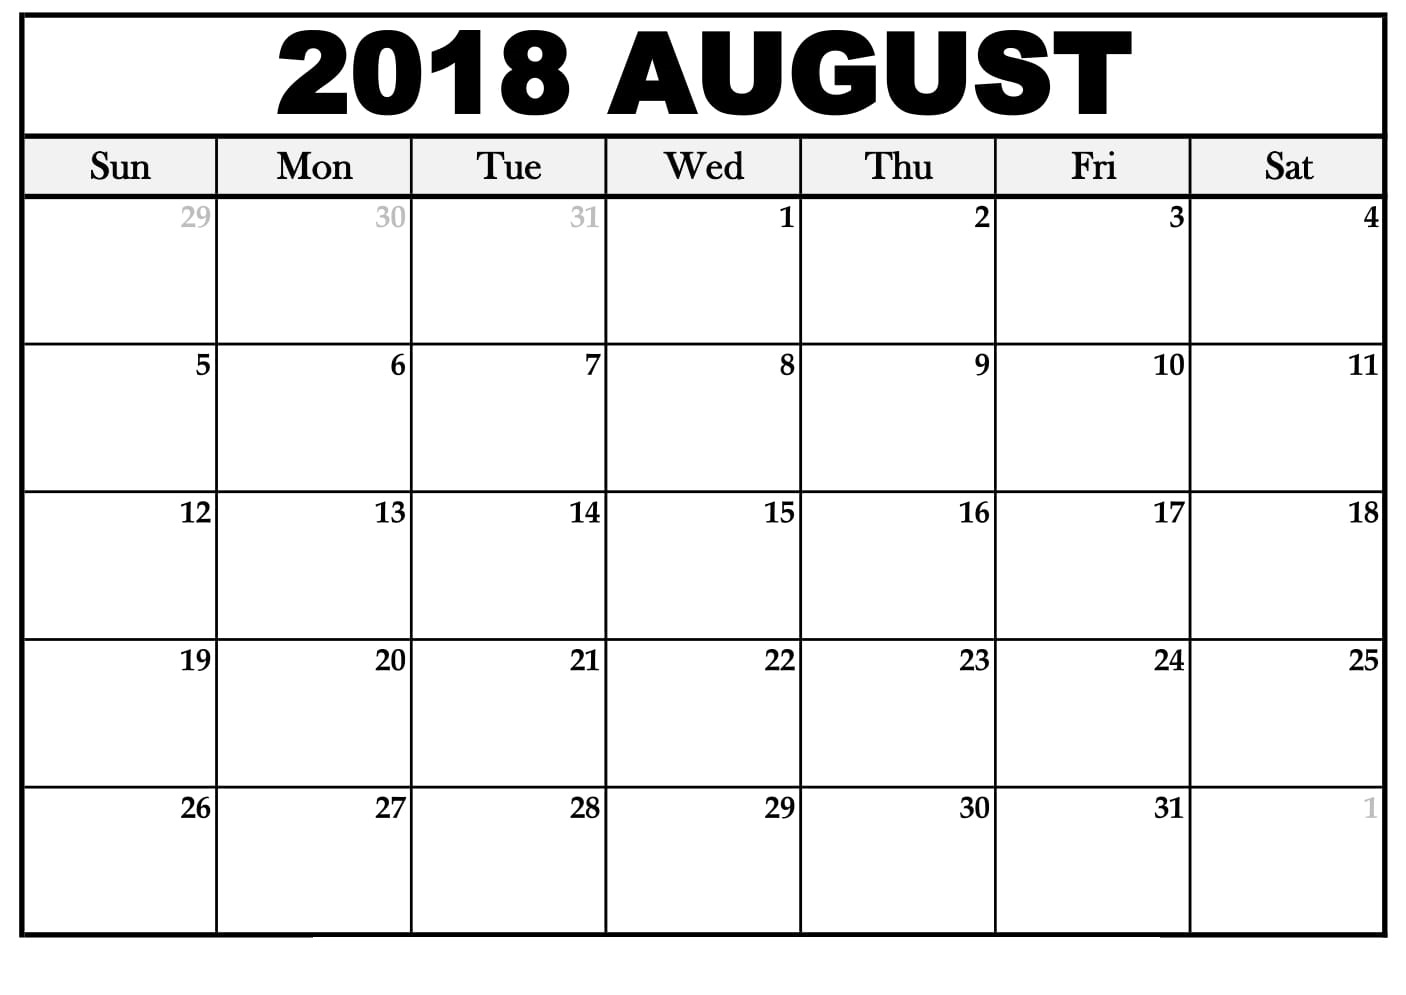 august 2018 monthly calendar with holidays printable calendar template Printable Monthly Calendar For Aug 2018 erdferdf